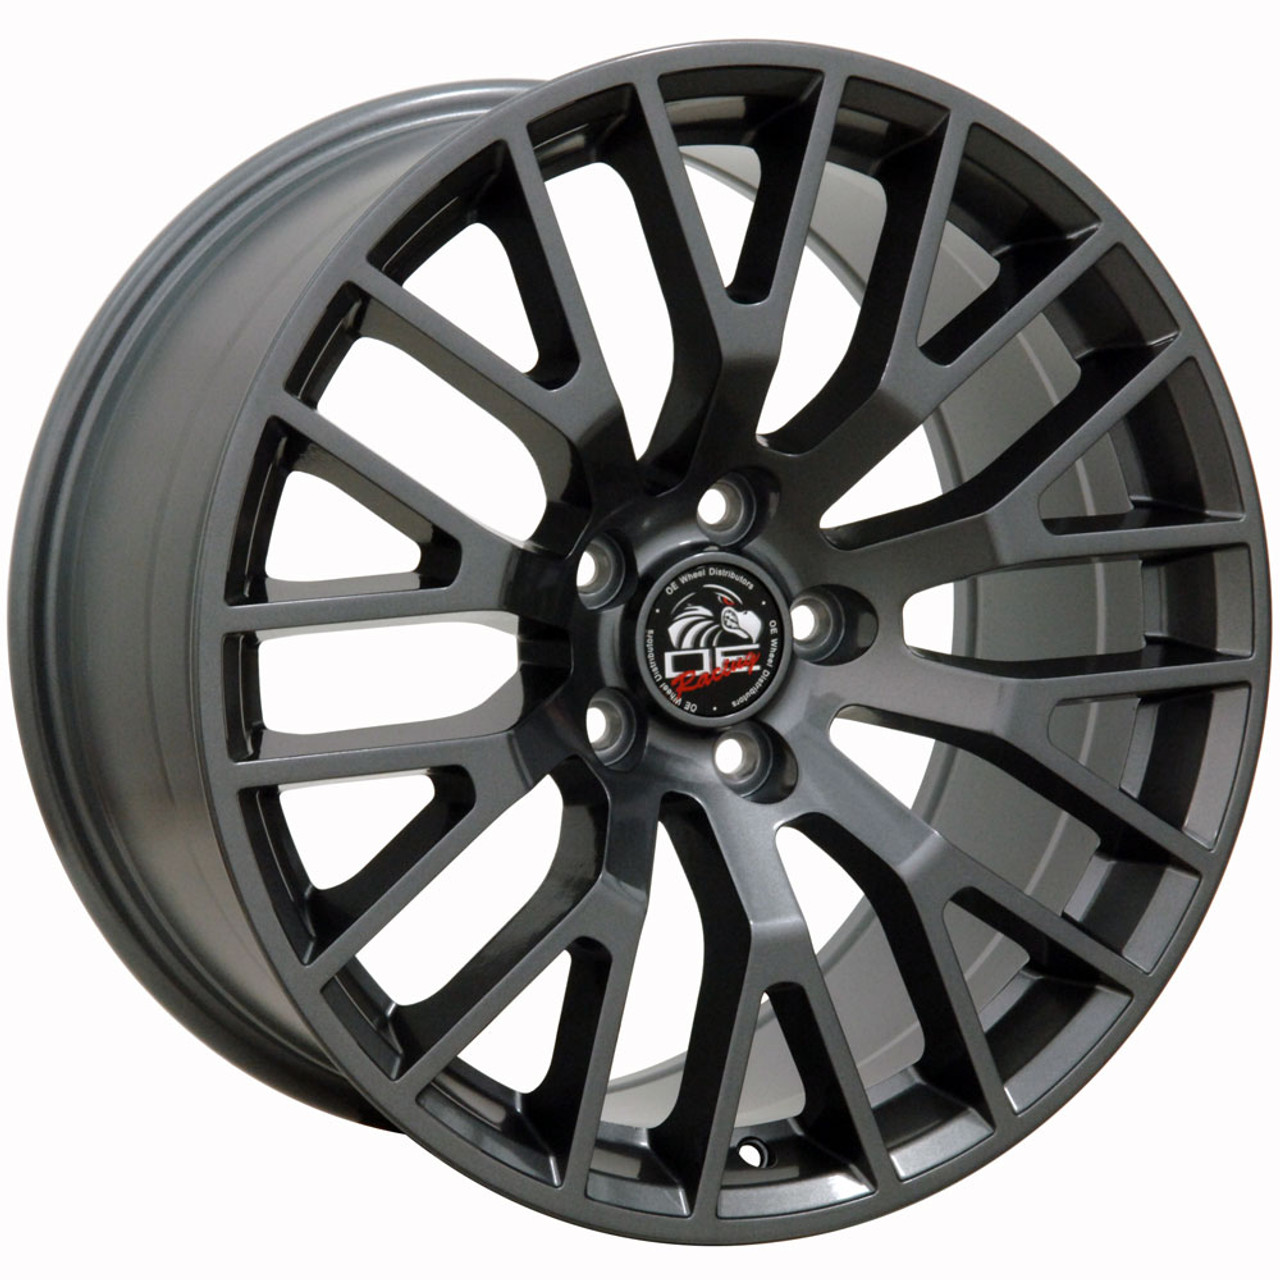 Fits Ford  Mustang Gt Wheels Gunmetal Set Of  X